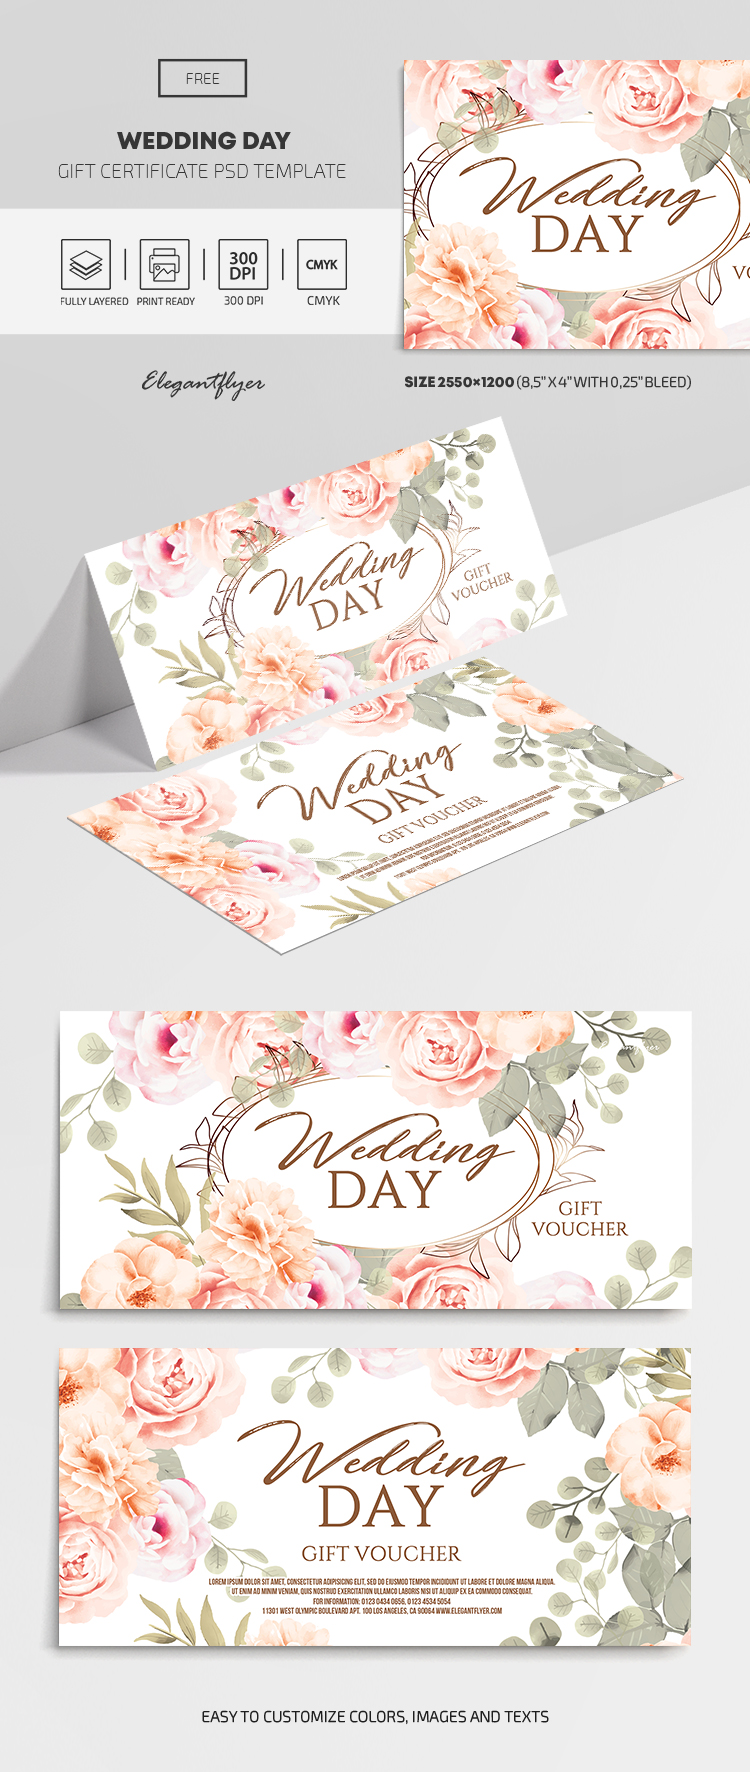 Wedding Day – Free Gift Certificate Template in PSD